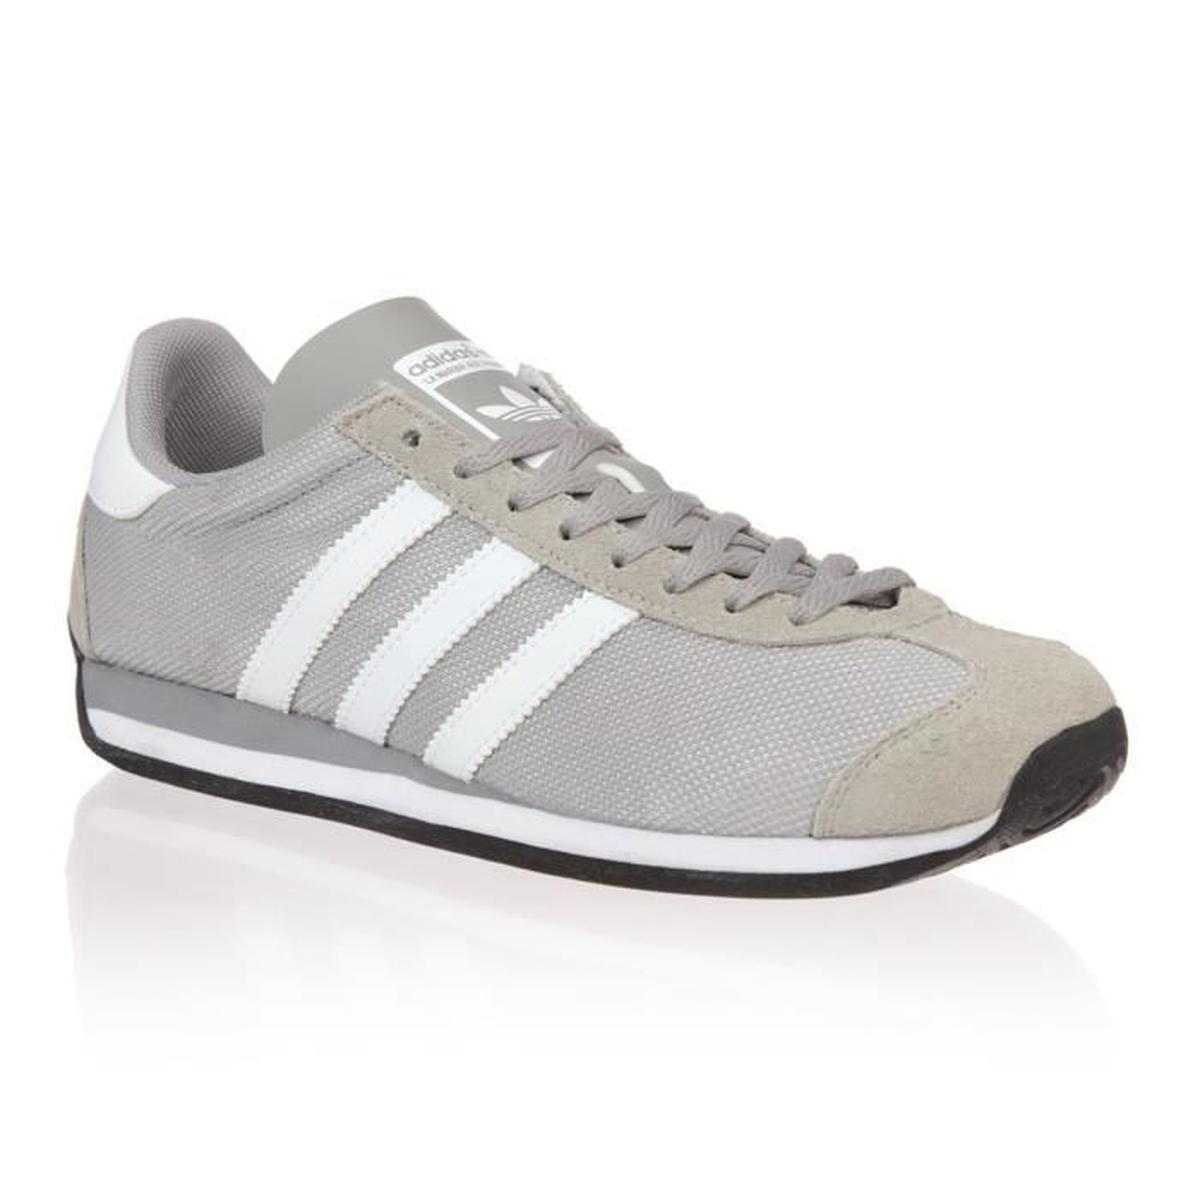 new product f883d 5d5ef adidas country pas cher